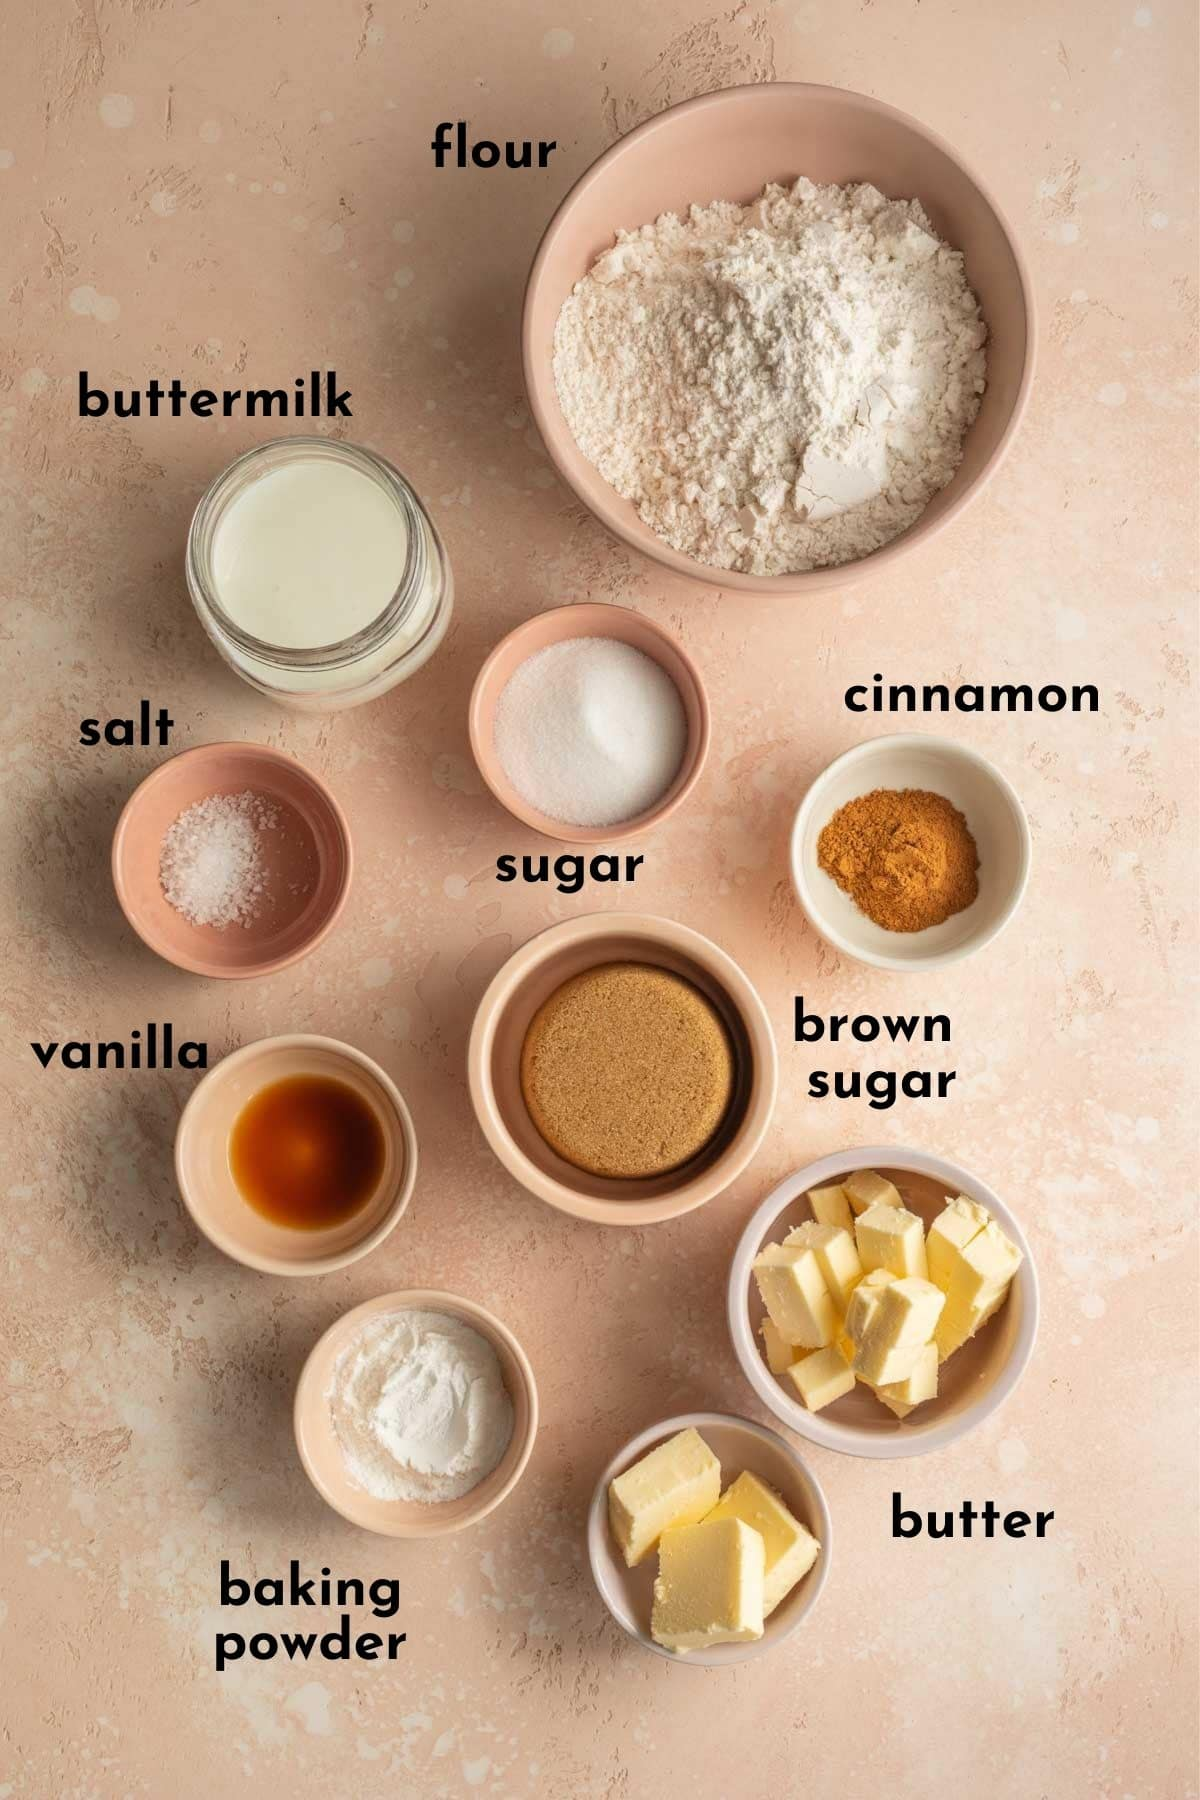 Ingredients to make cinnamon rolls arranged individually and labelled.